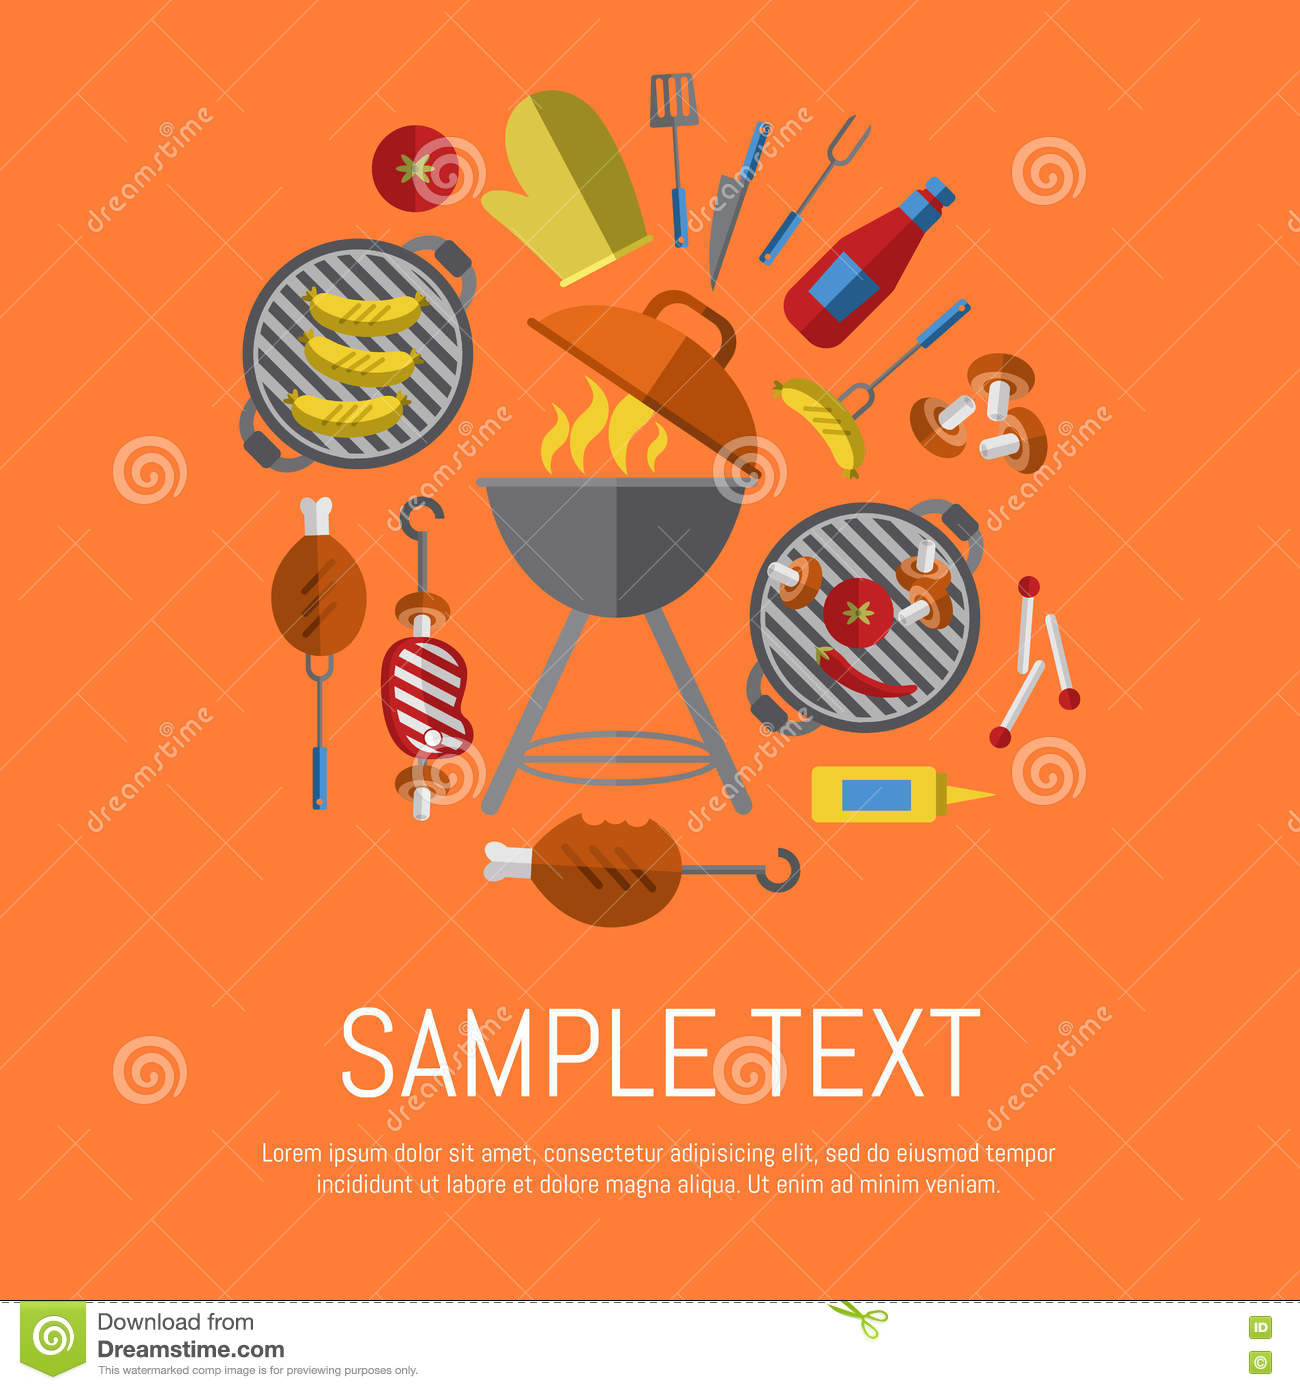 Poster design tools - Barbecue Grill Poster Design Template Stock Vector